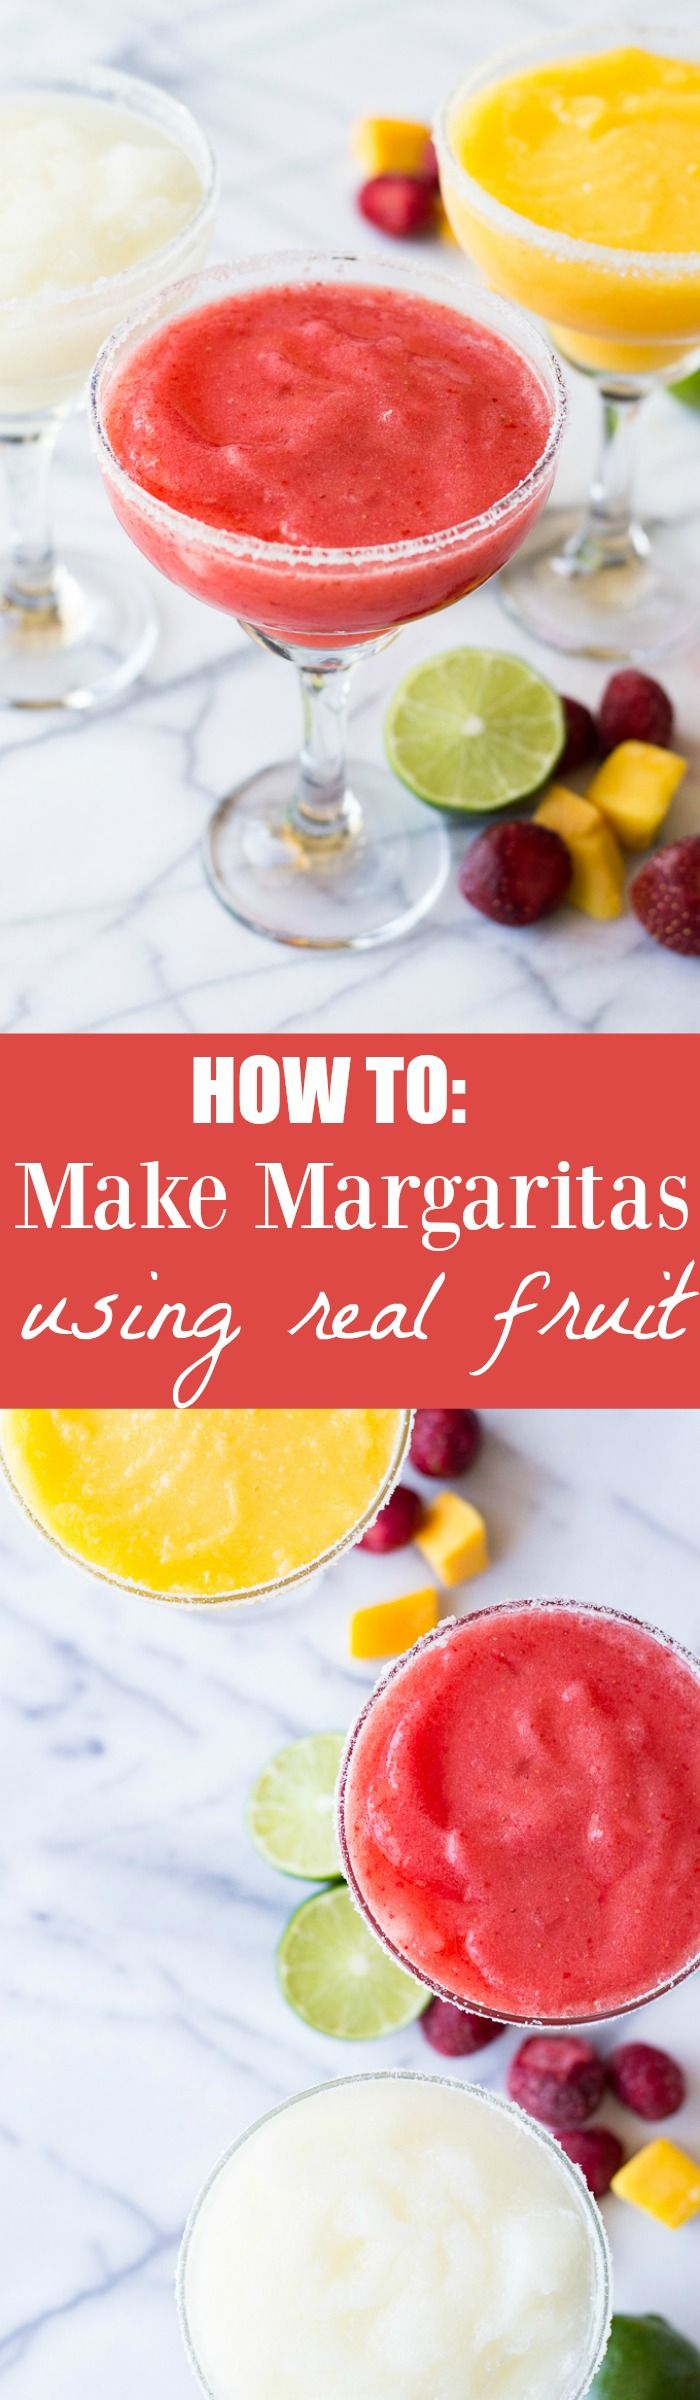 How To Make Margaritas (using real fruit)